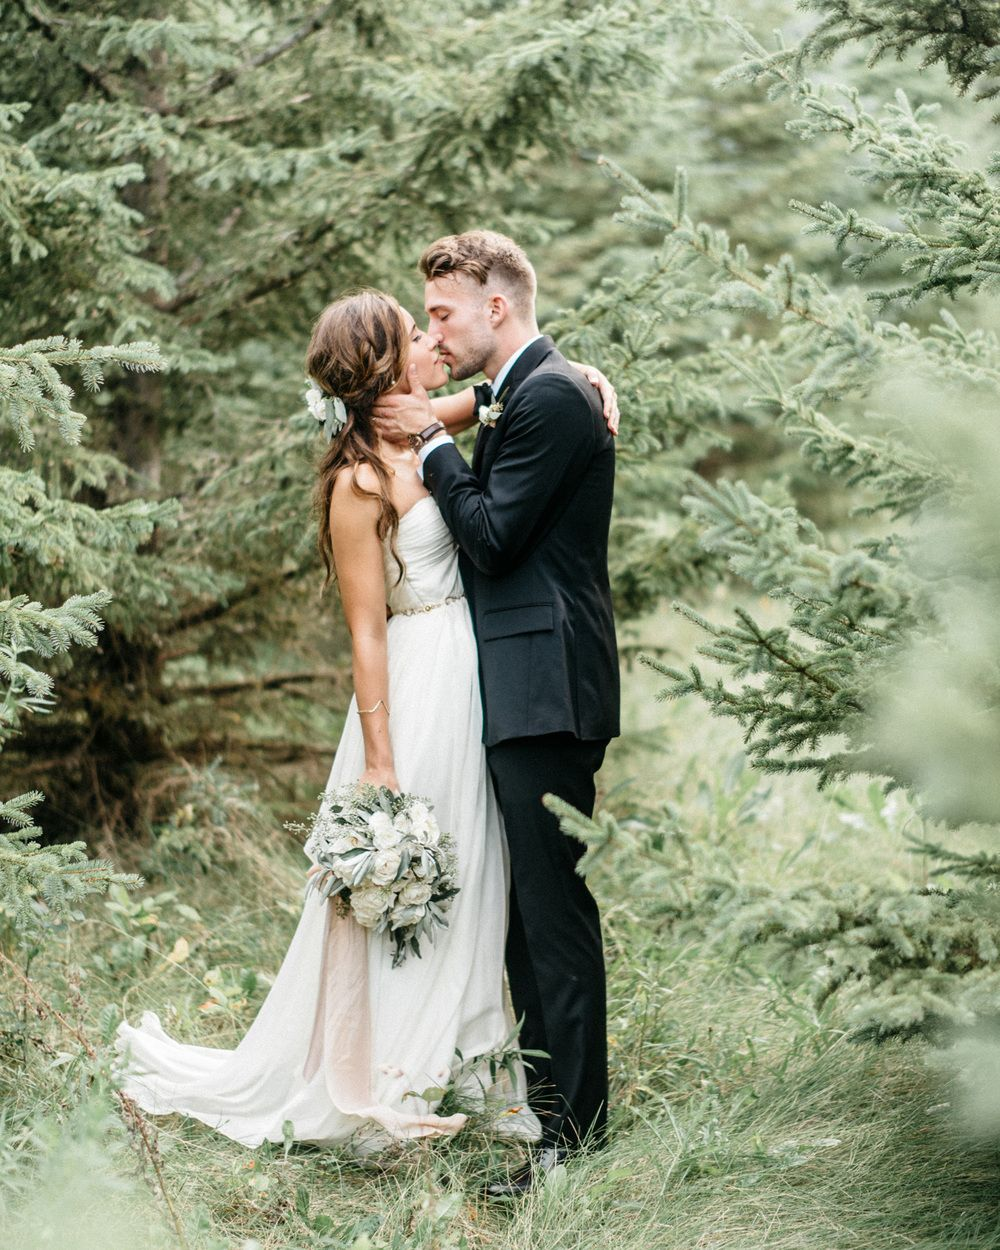 Wes & Bethany's Moment Filled Minnesota Countryside Barn